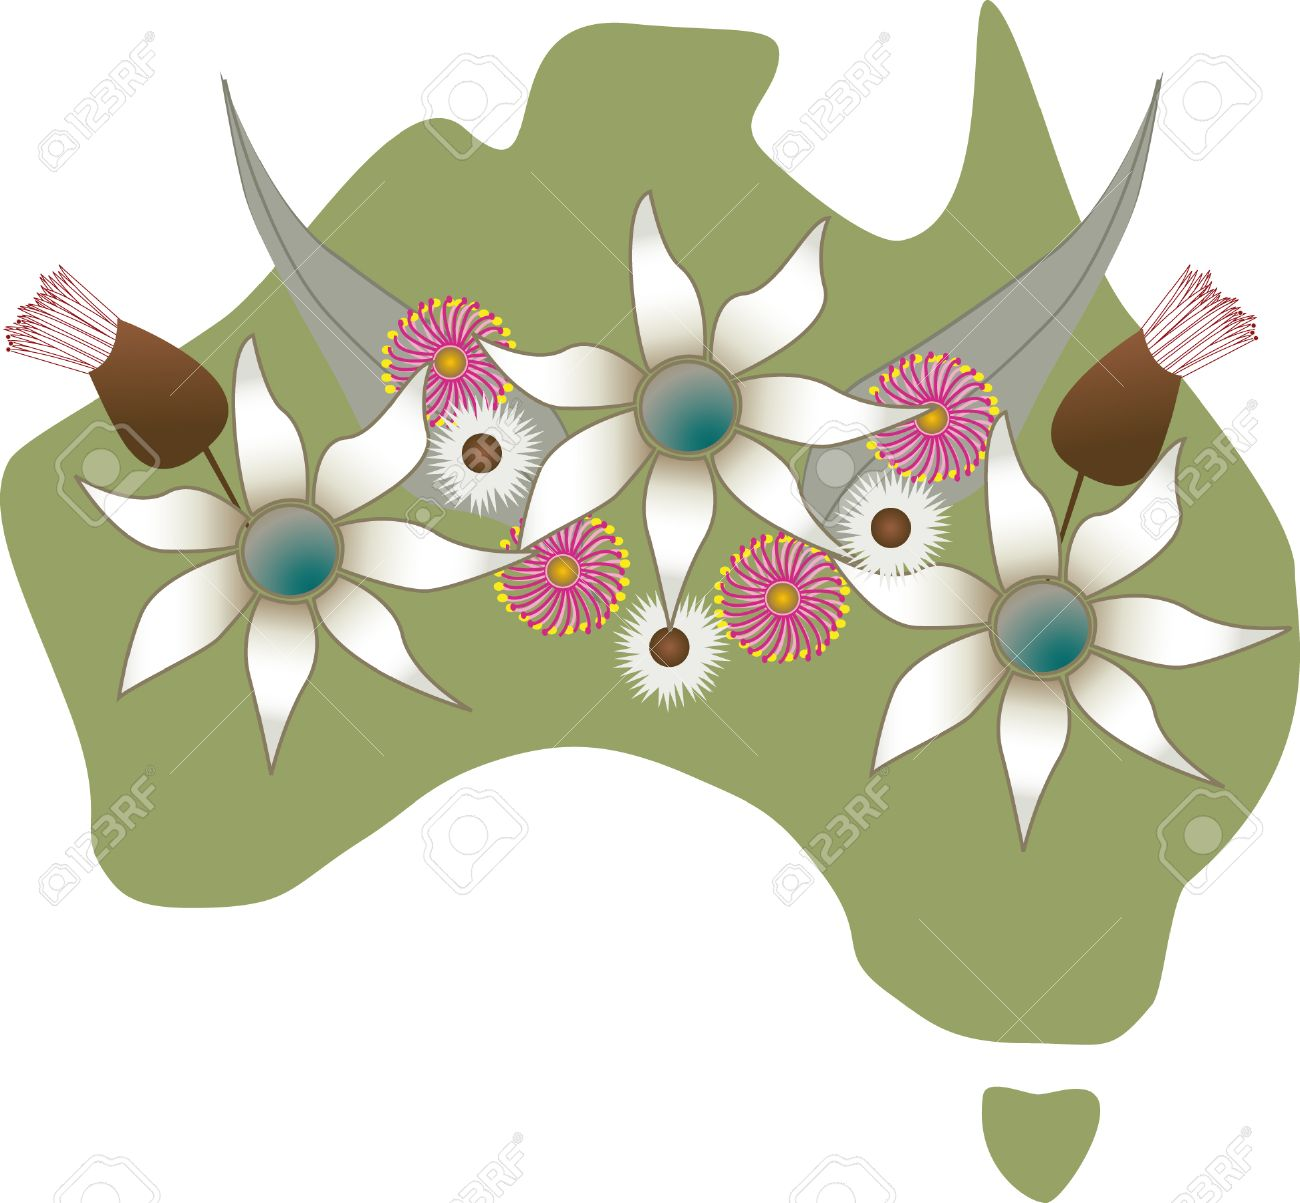 Map Of Australian With Native Flowers.